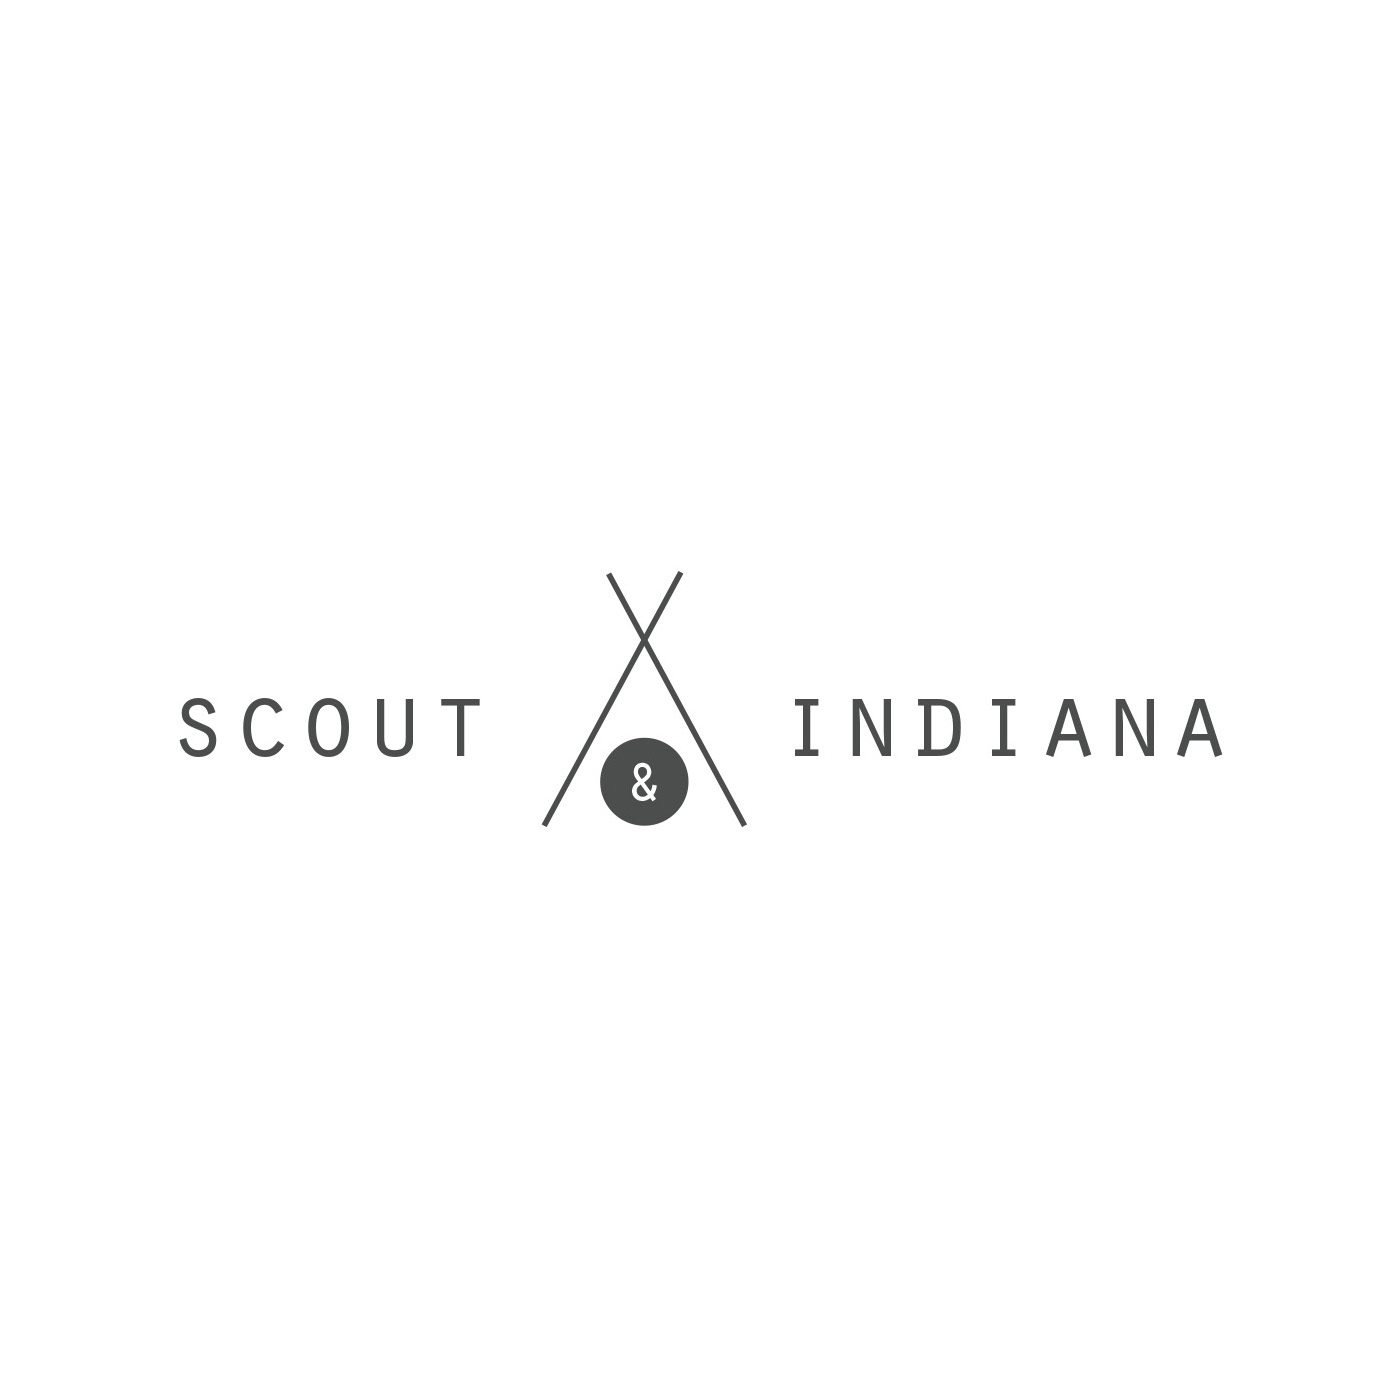 Steadfast-Supply-Scout&Indiana_hires_logo.jpg